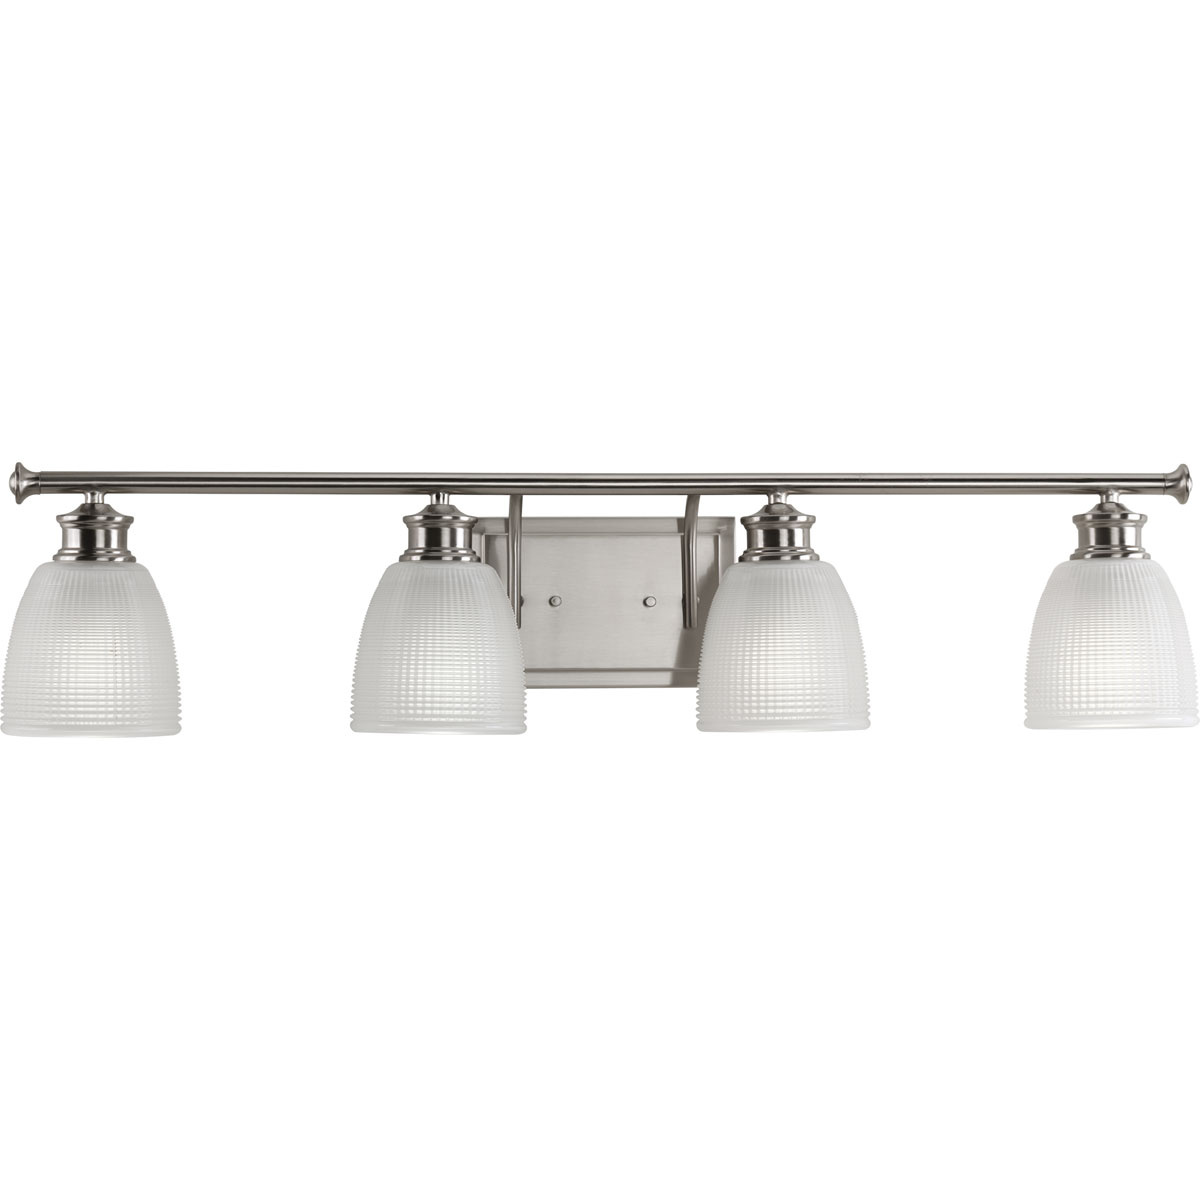 Progress lighting p2118 09 lucky 4 light bath vanity for 4 light bathroom fixture